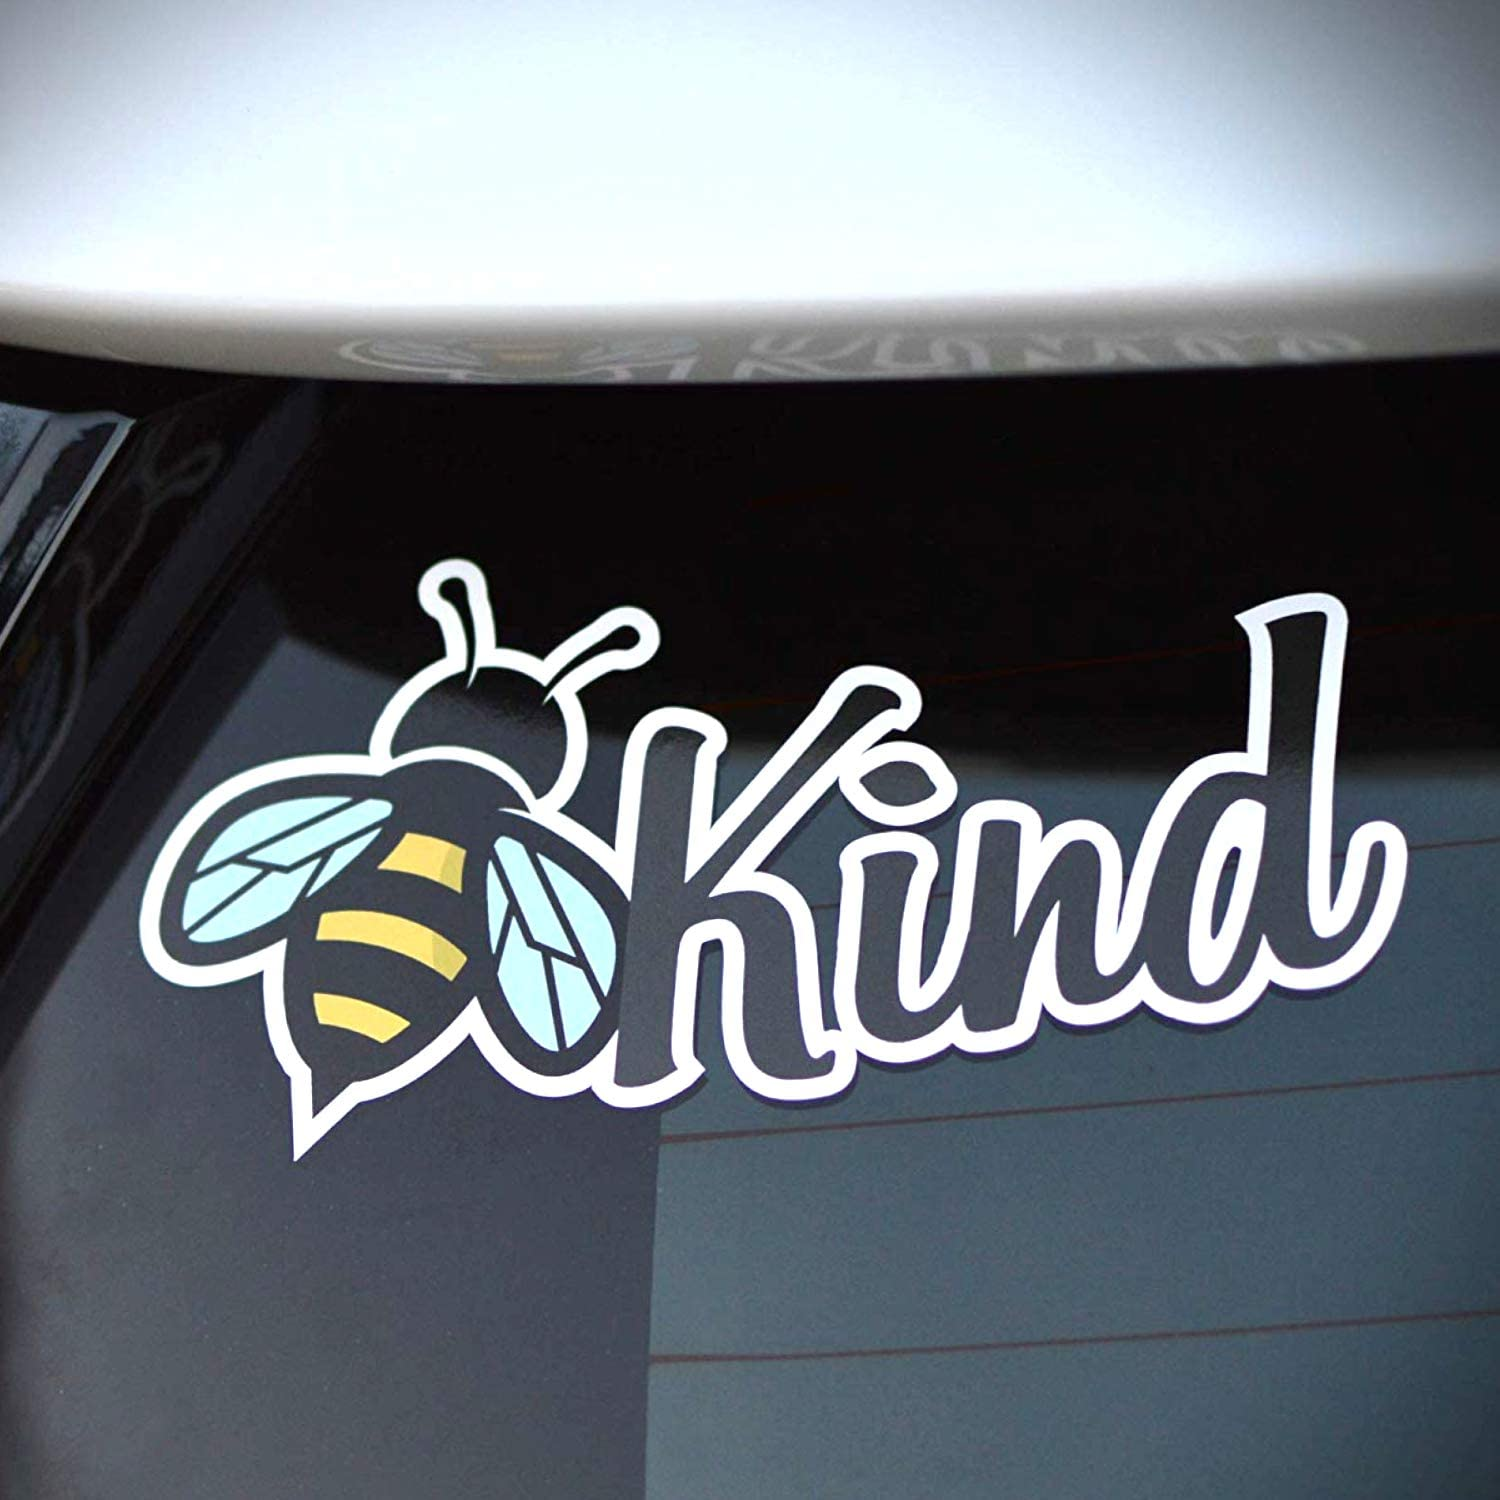 Byzee Bee Kind Sticker, Cute Vinyl Car or Laptop be Kind Decal, Quality Graphic